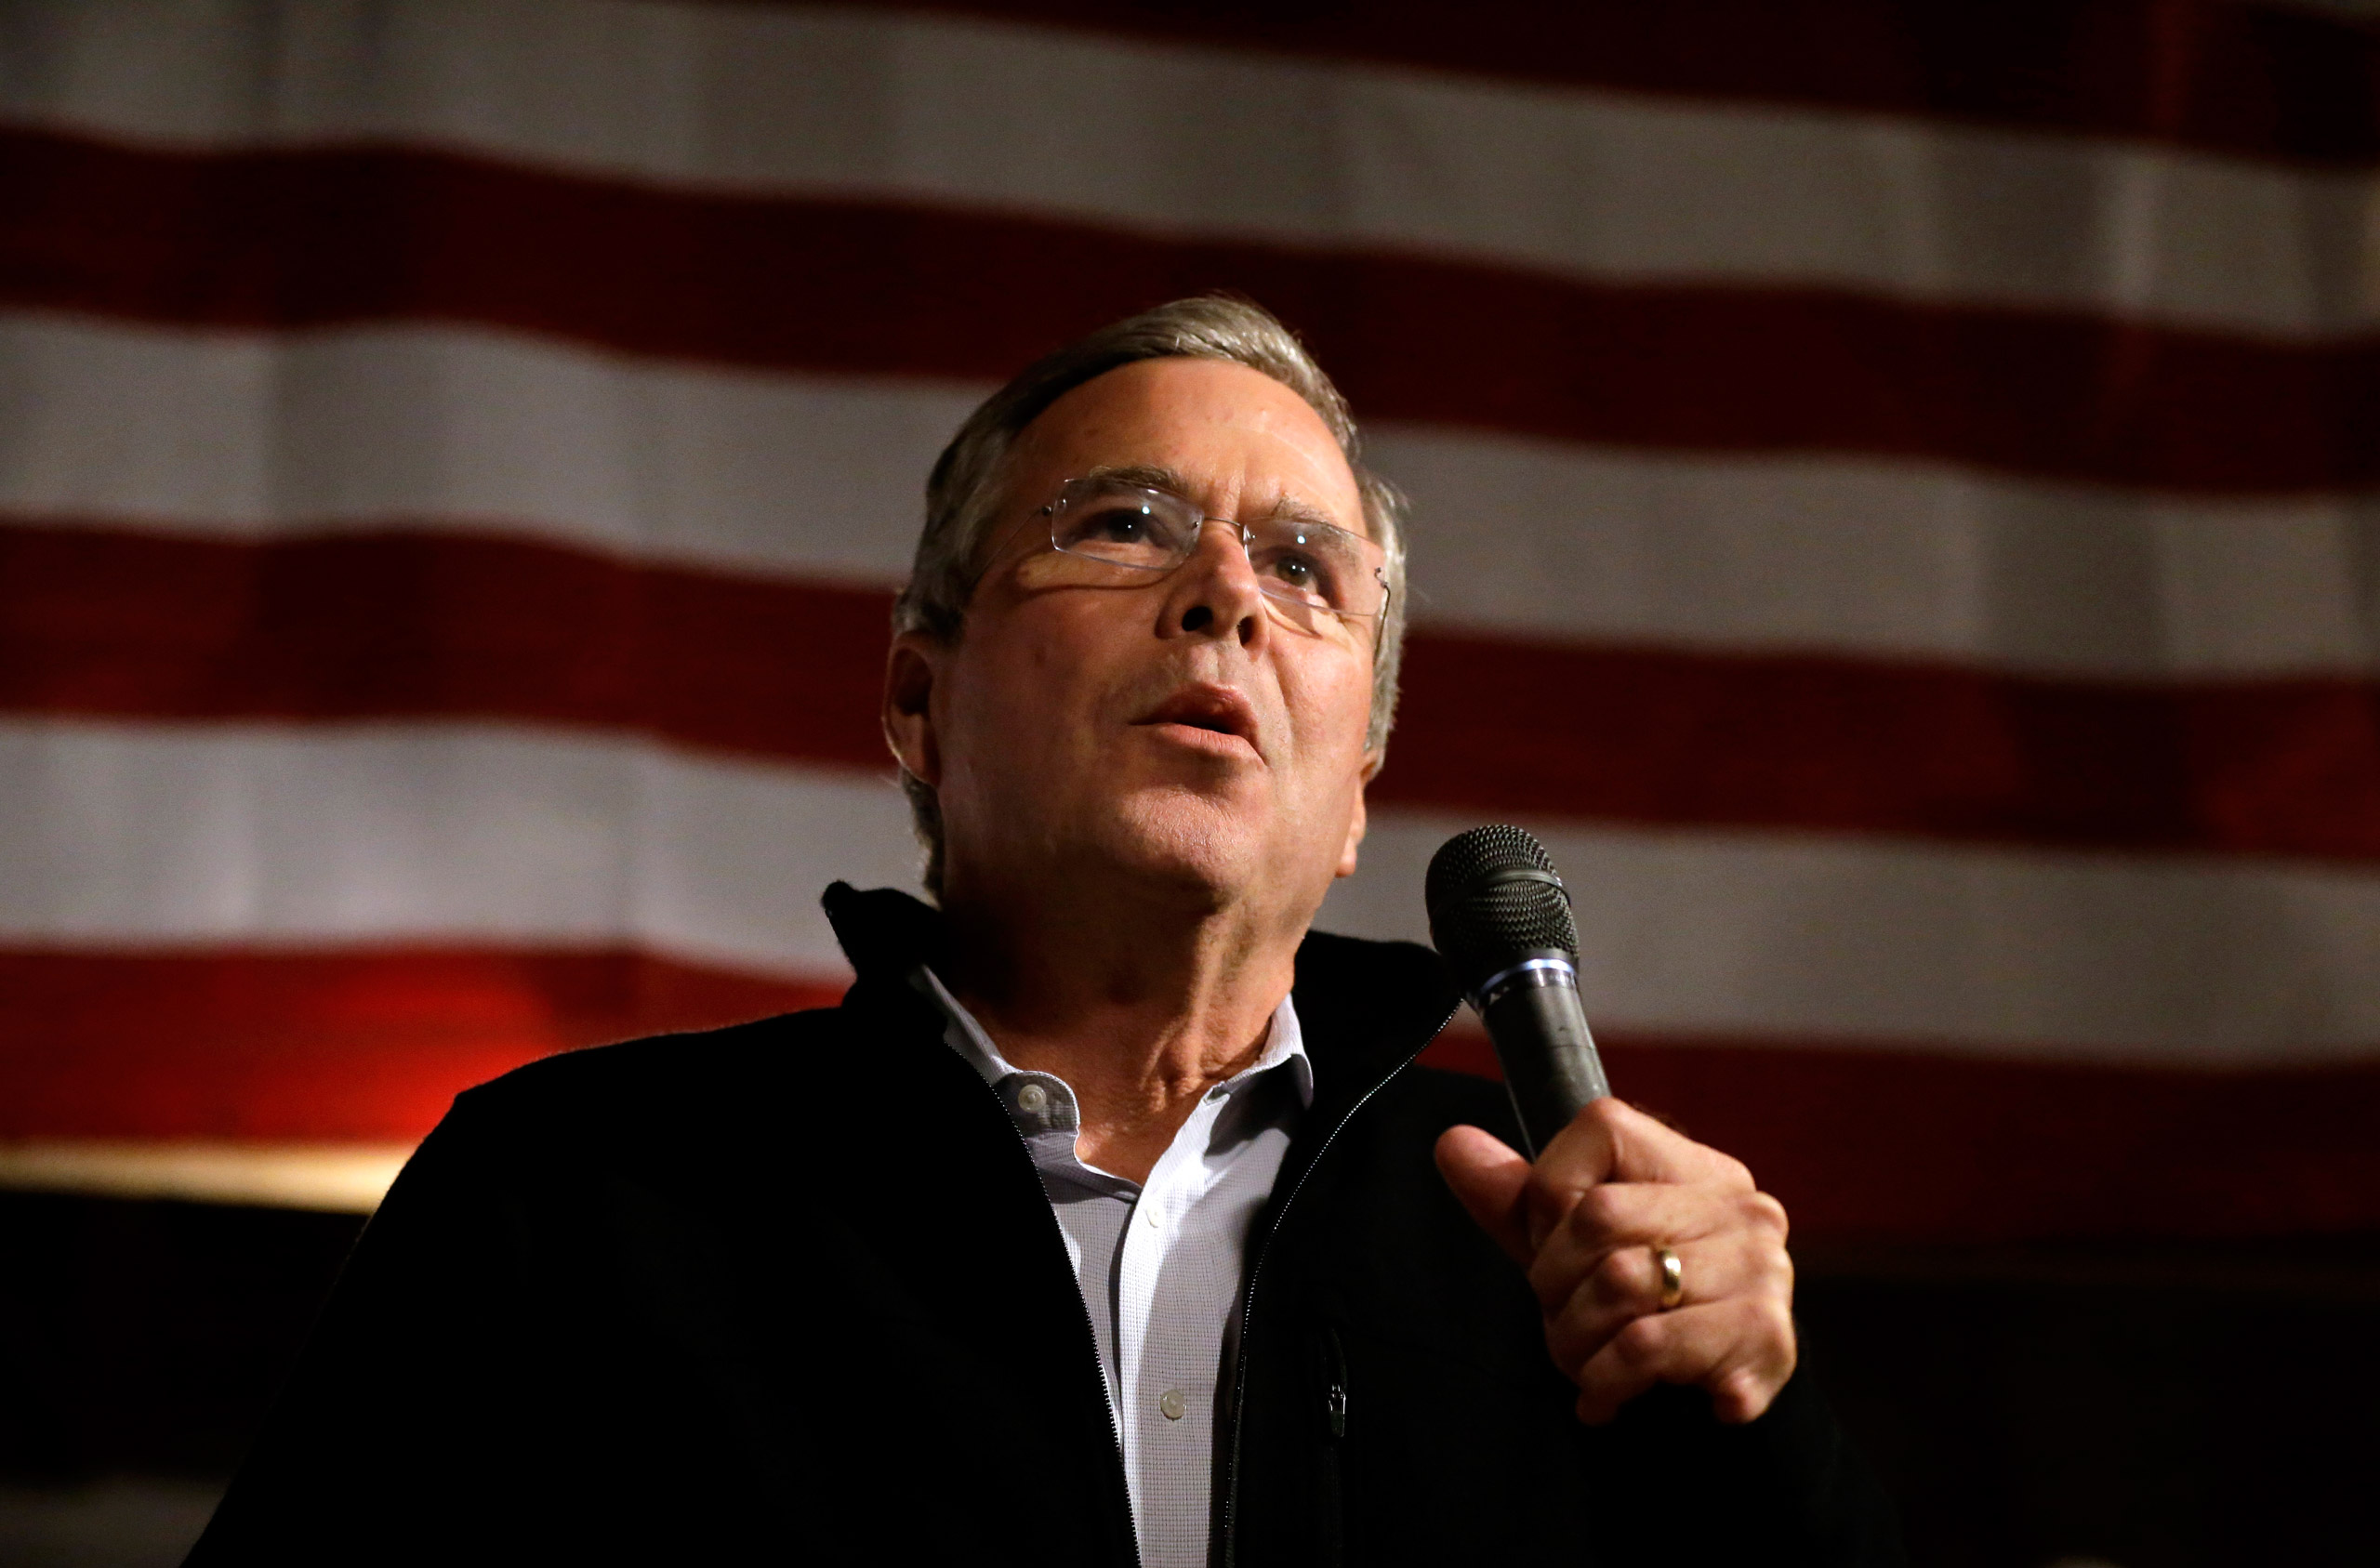 Jeb Bush addresses an audience at a campaign event held in a barn belonging to former Sen. Scott Brown in Rye, N.H., on Nov. 3, 2015.